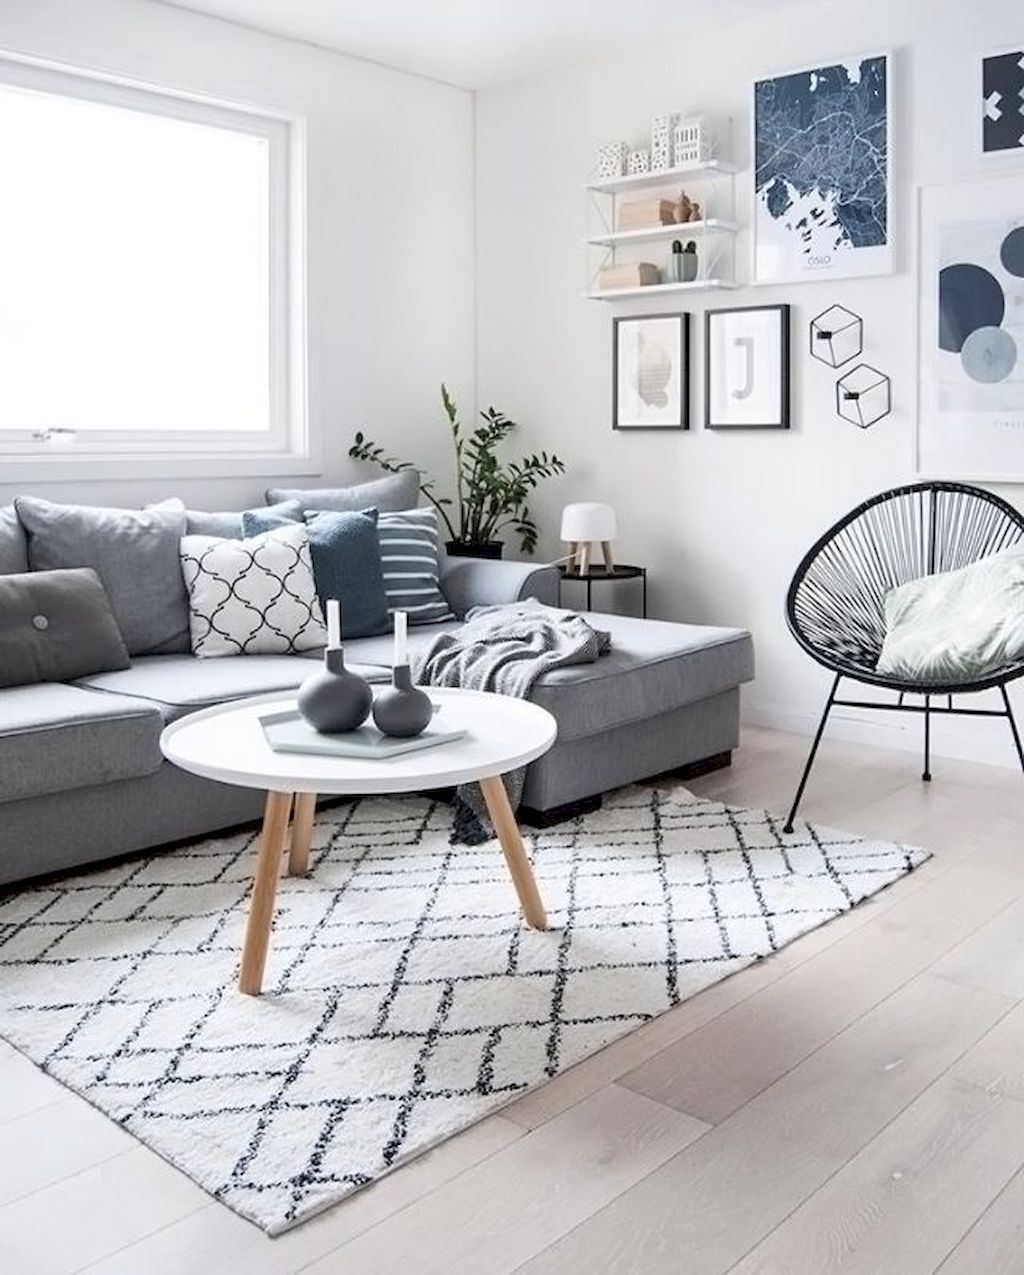 Best Scandinavian Living Room Design Ideas: Pin By Sweet Magnolias On A Minimal Home In 2019